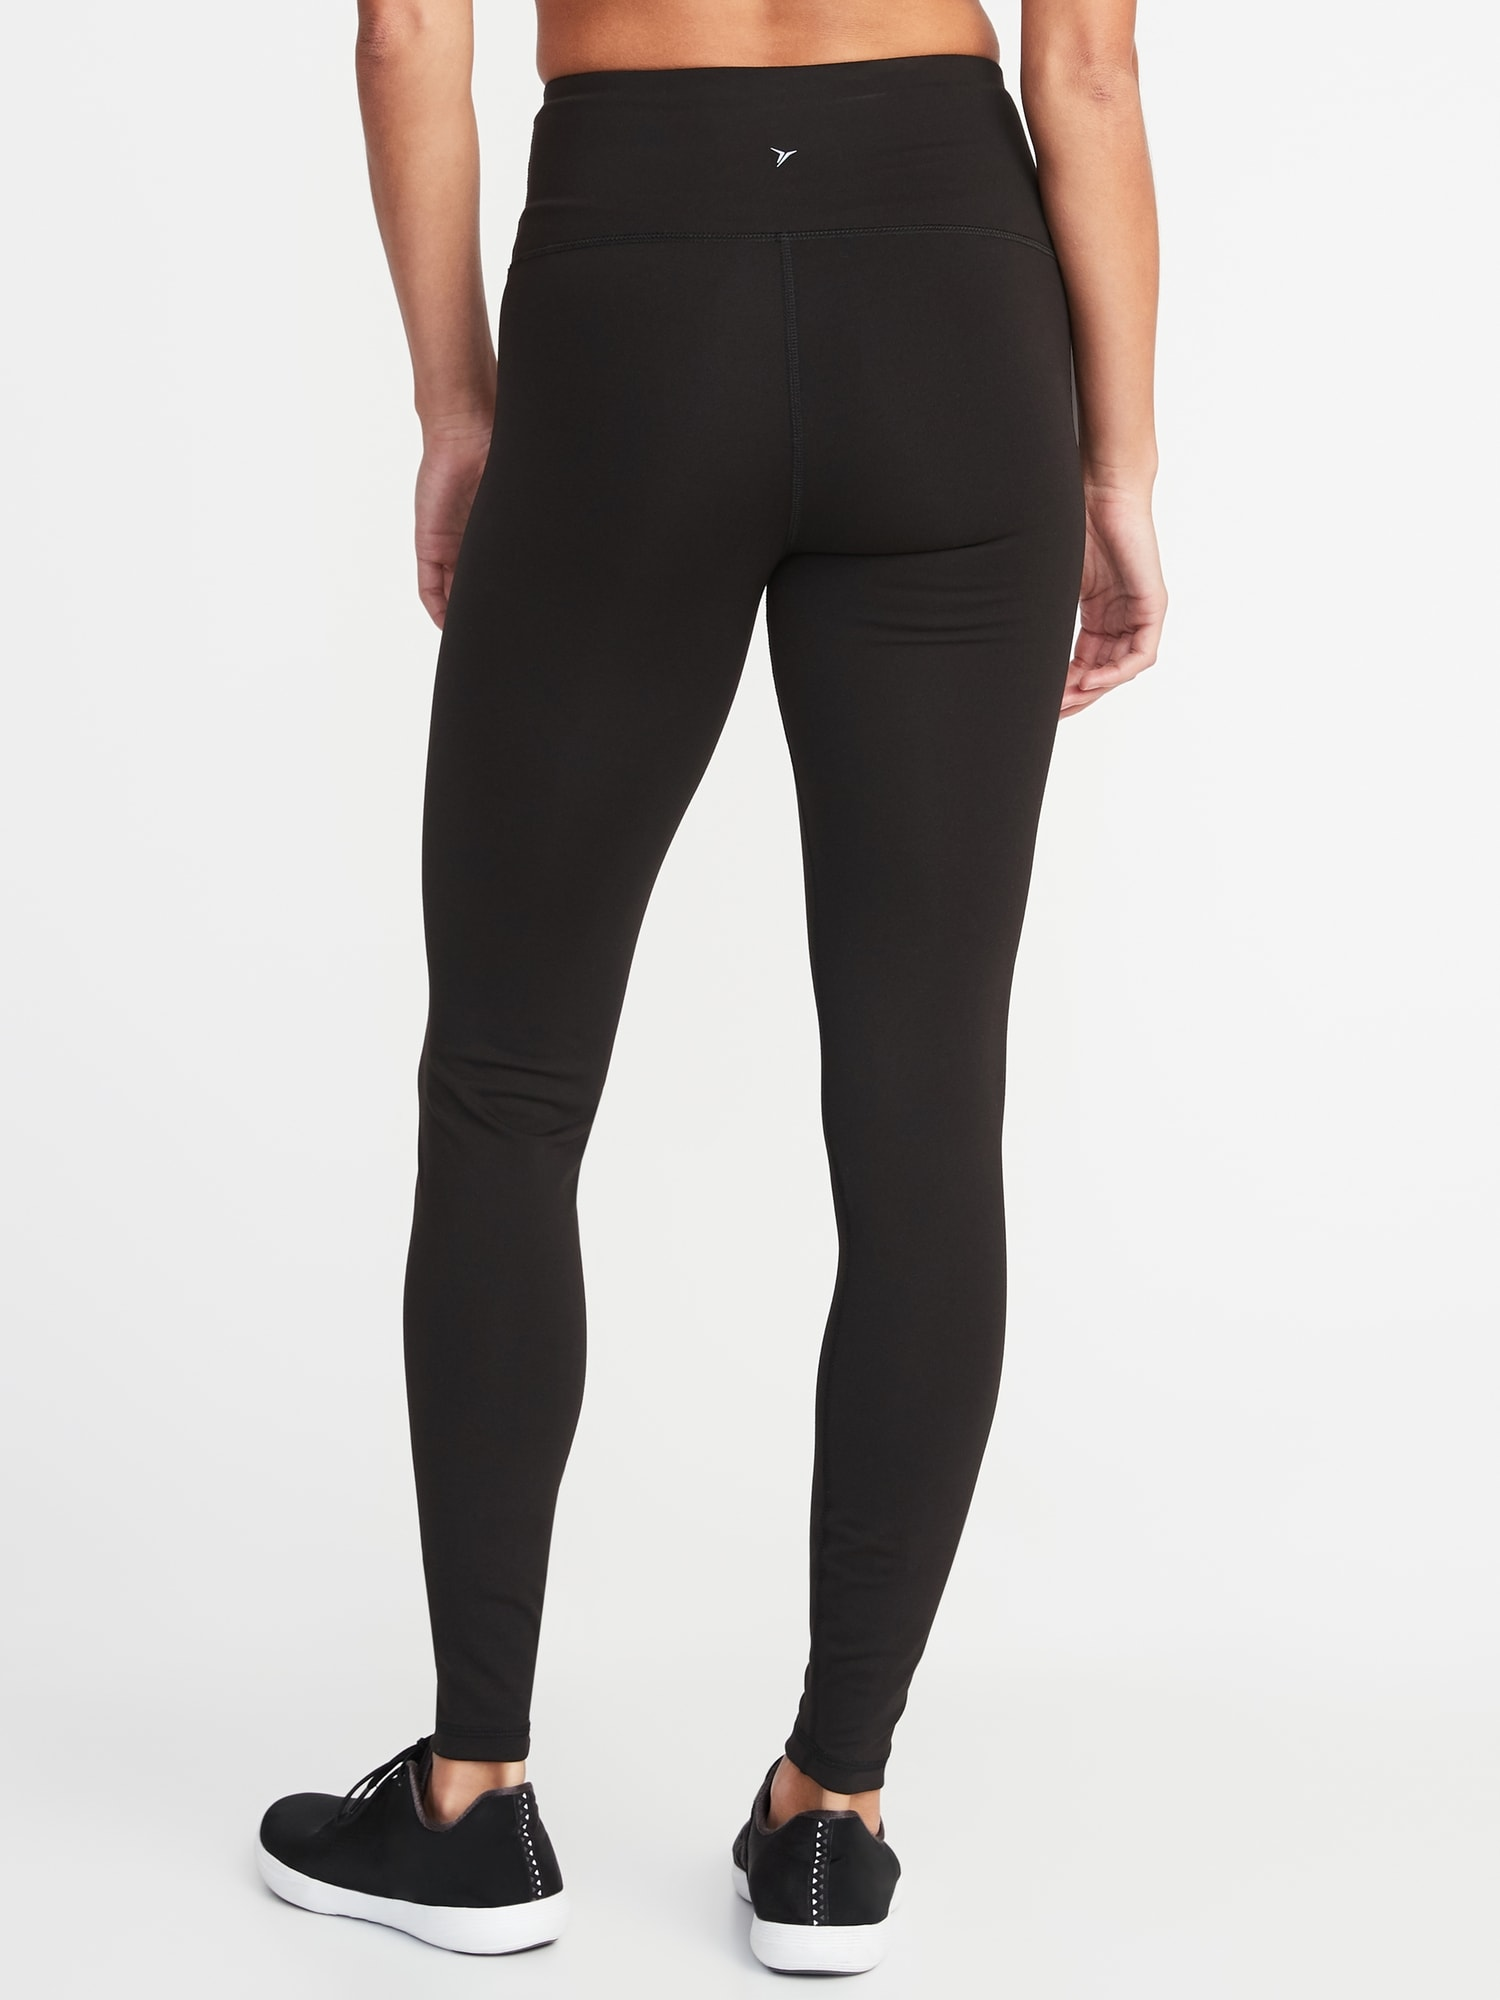 High-Rise Compression Leggings for Women  4d761f6aa86